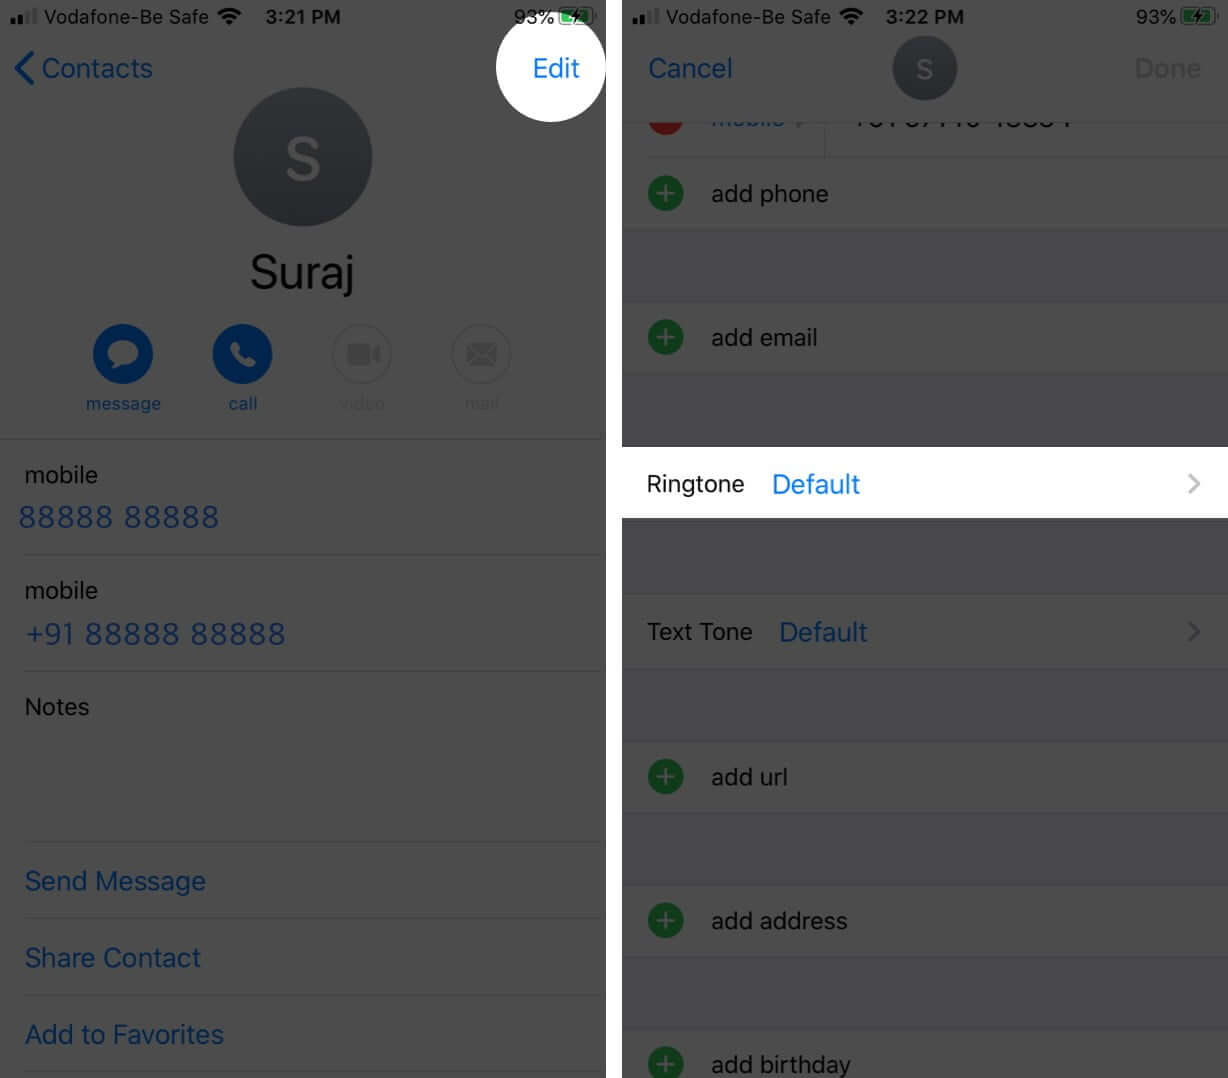 Tap on Edit on Contact Card and Then Tap on Ringtone